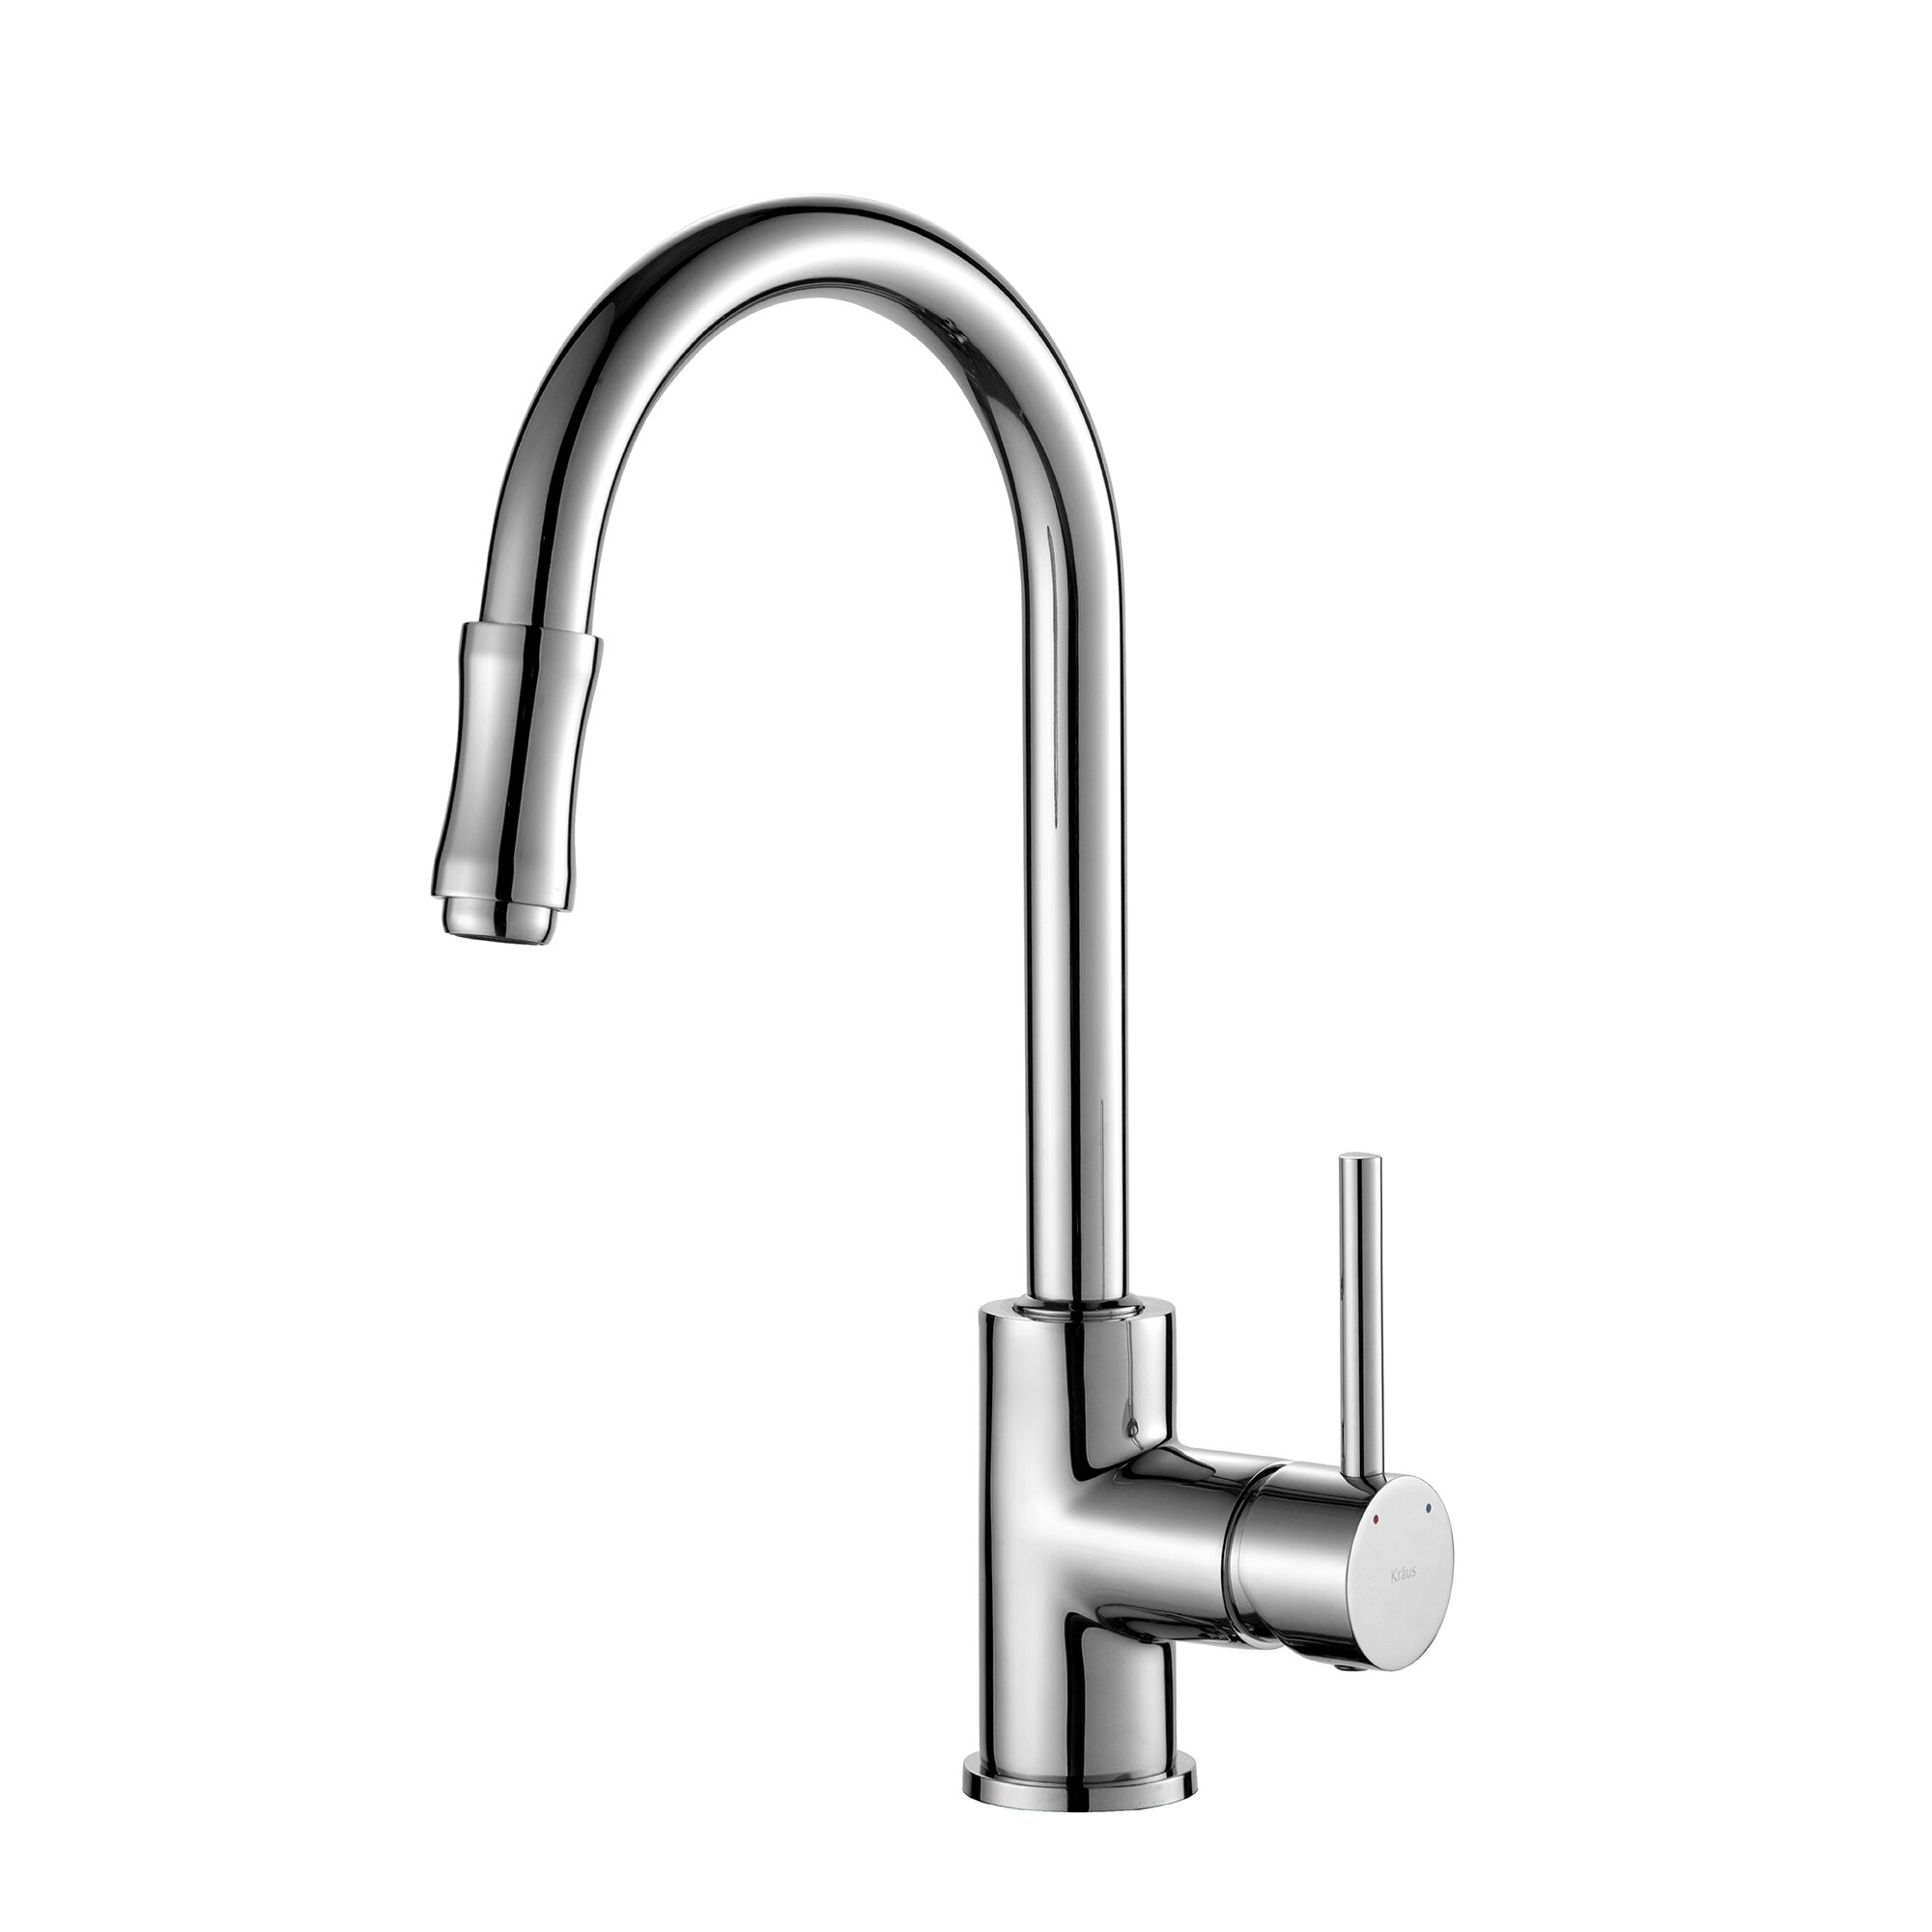 Kraus Pull Down Kitchen Faucet Hose